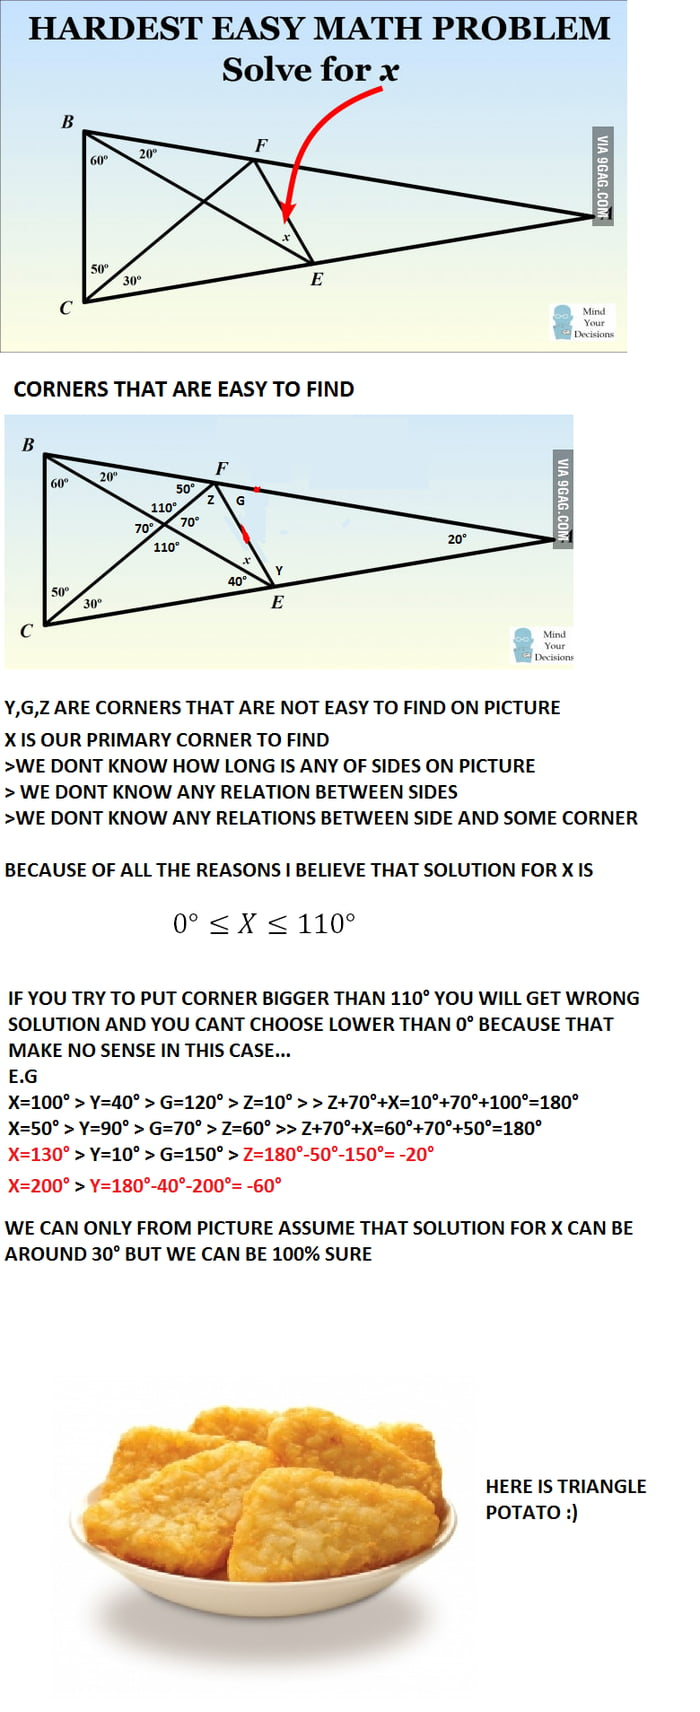 Hardest easy math problem (possible solution) - 9GAG